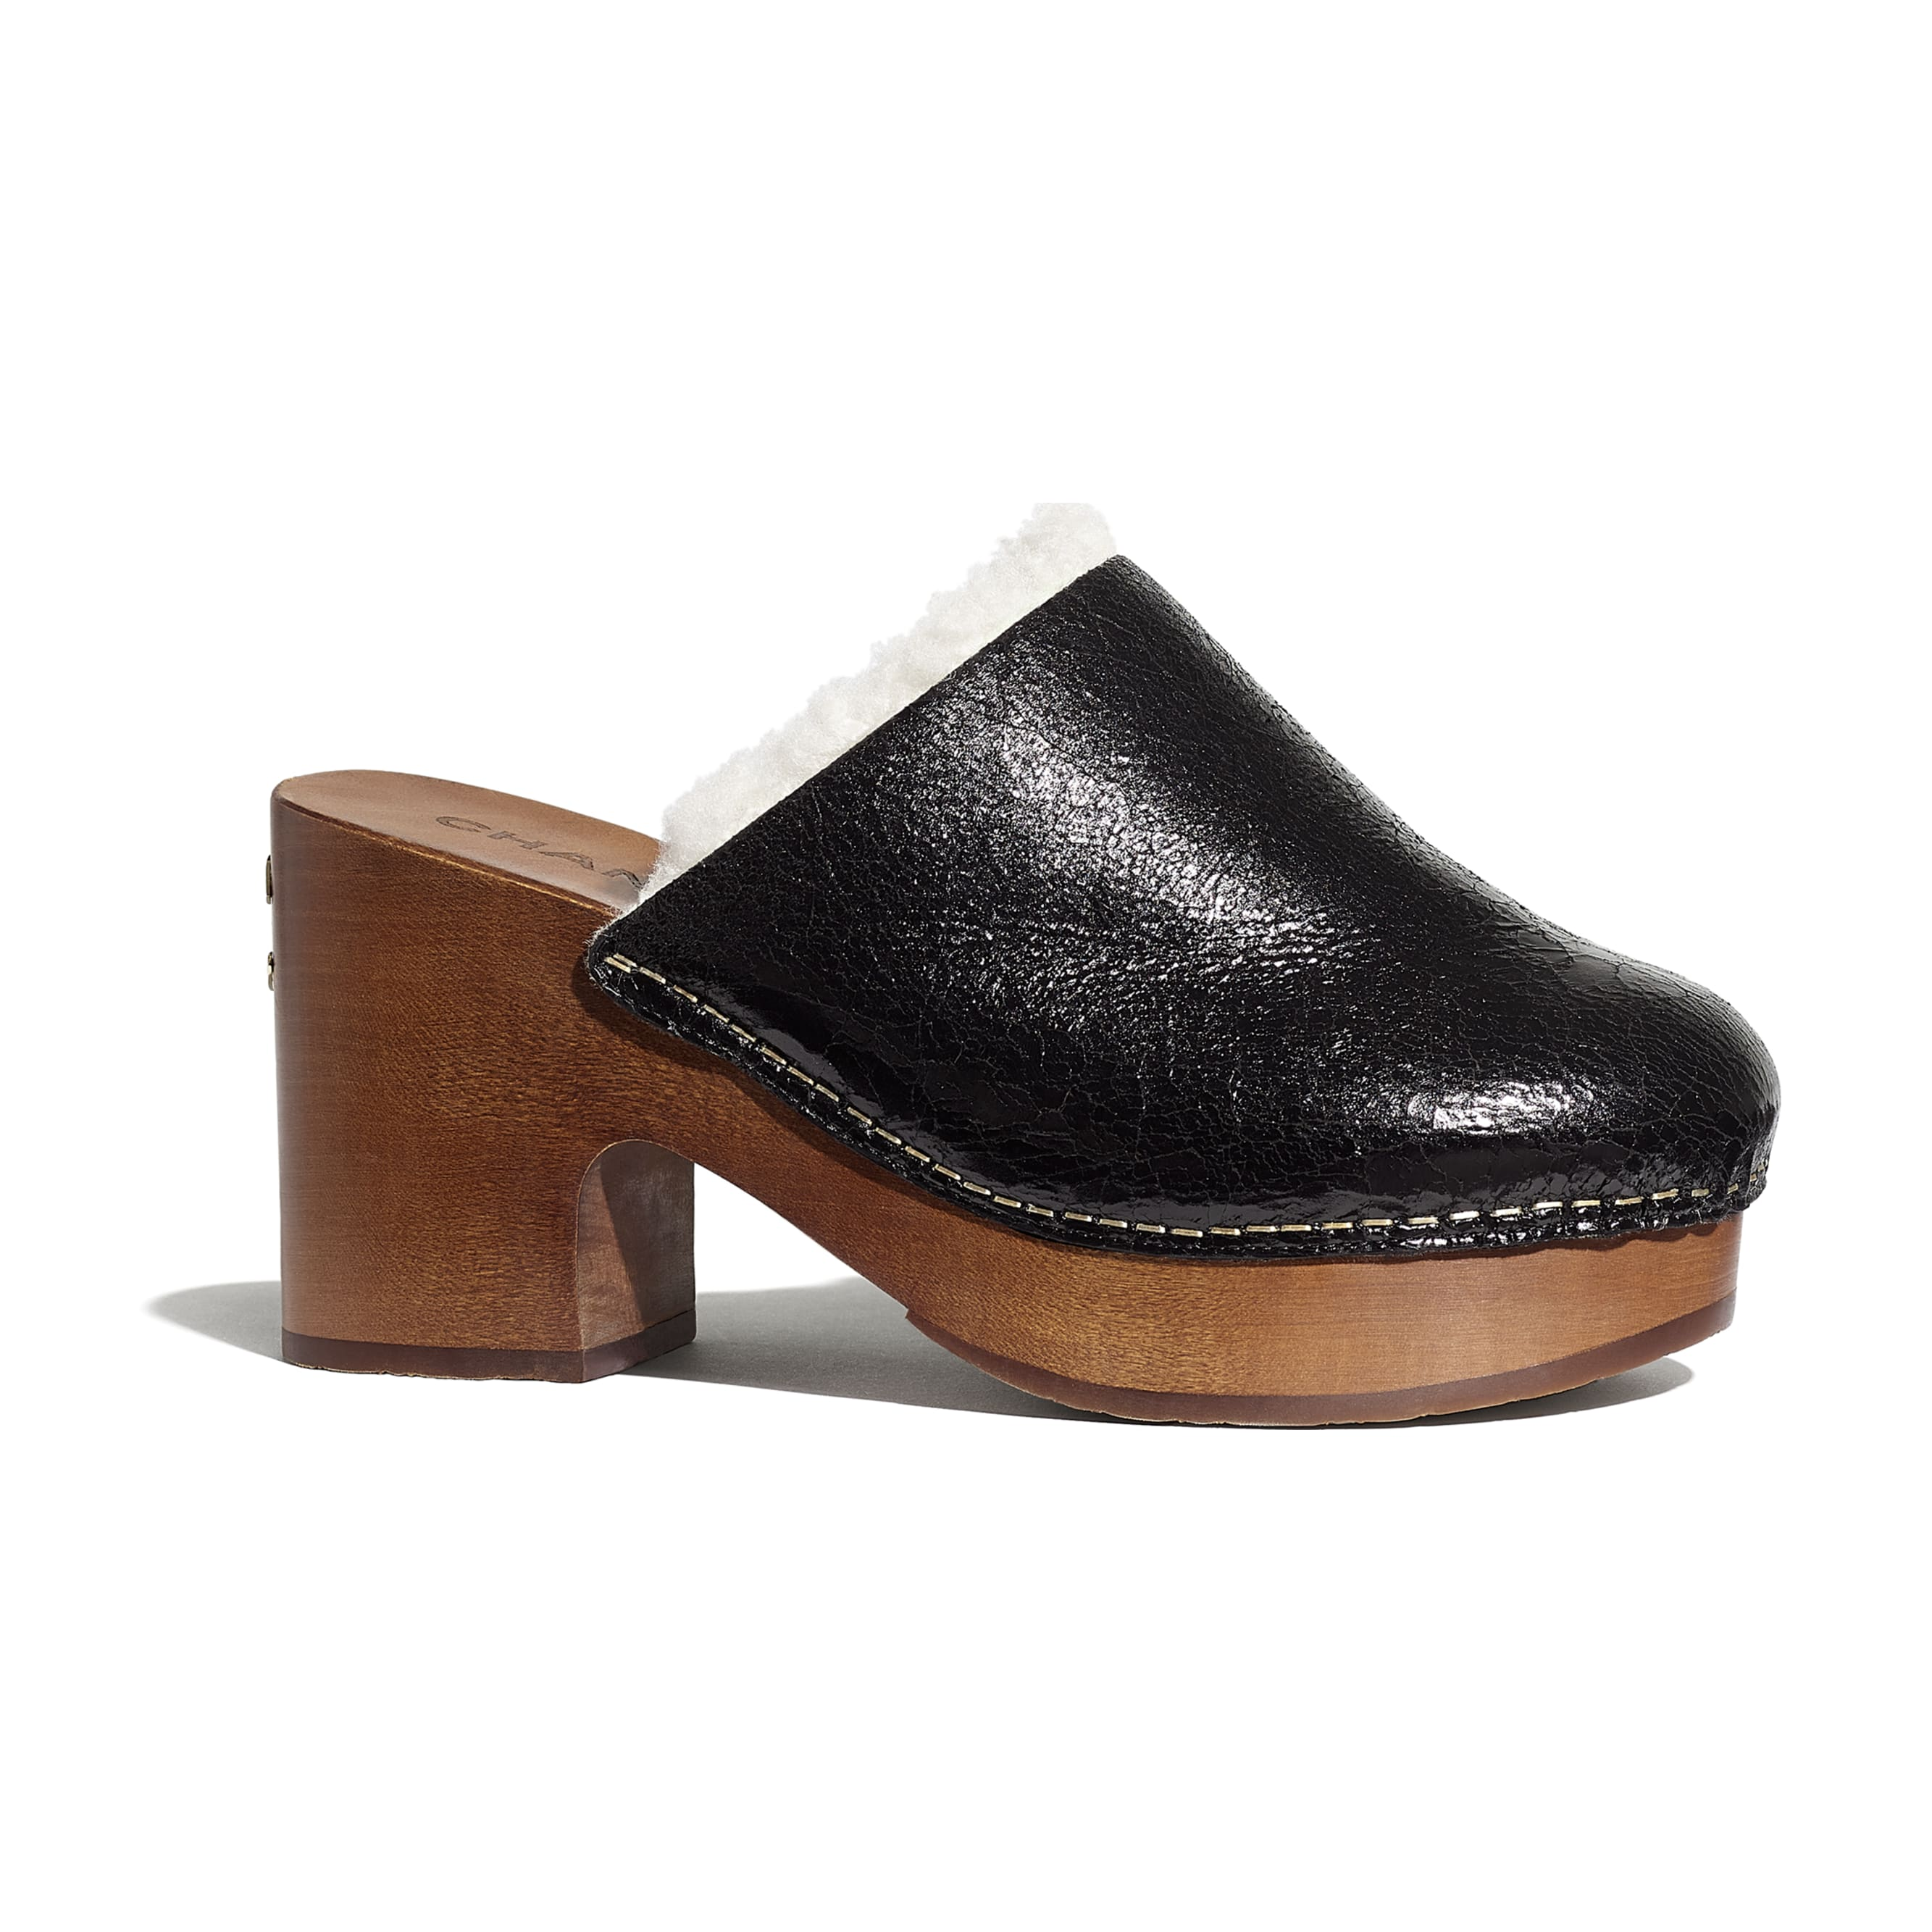 Clogs - Black - Crackled Sheepskin & Shearling - Default view - see standard sized version